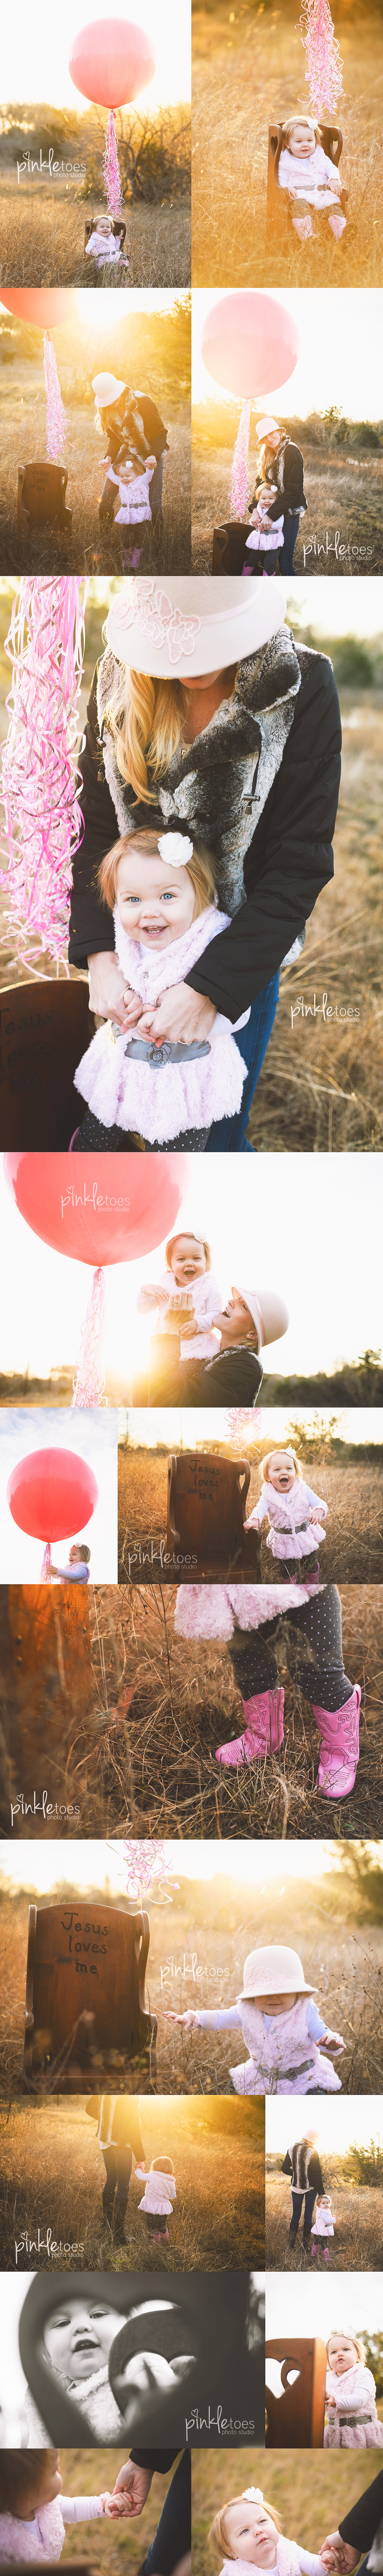 baby-girl-first-birthday-giant-pink-balloon-austin-outdoors-sunrise-photo-session